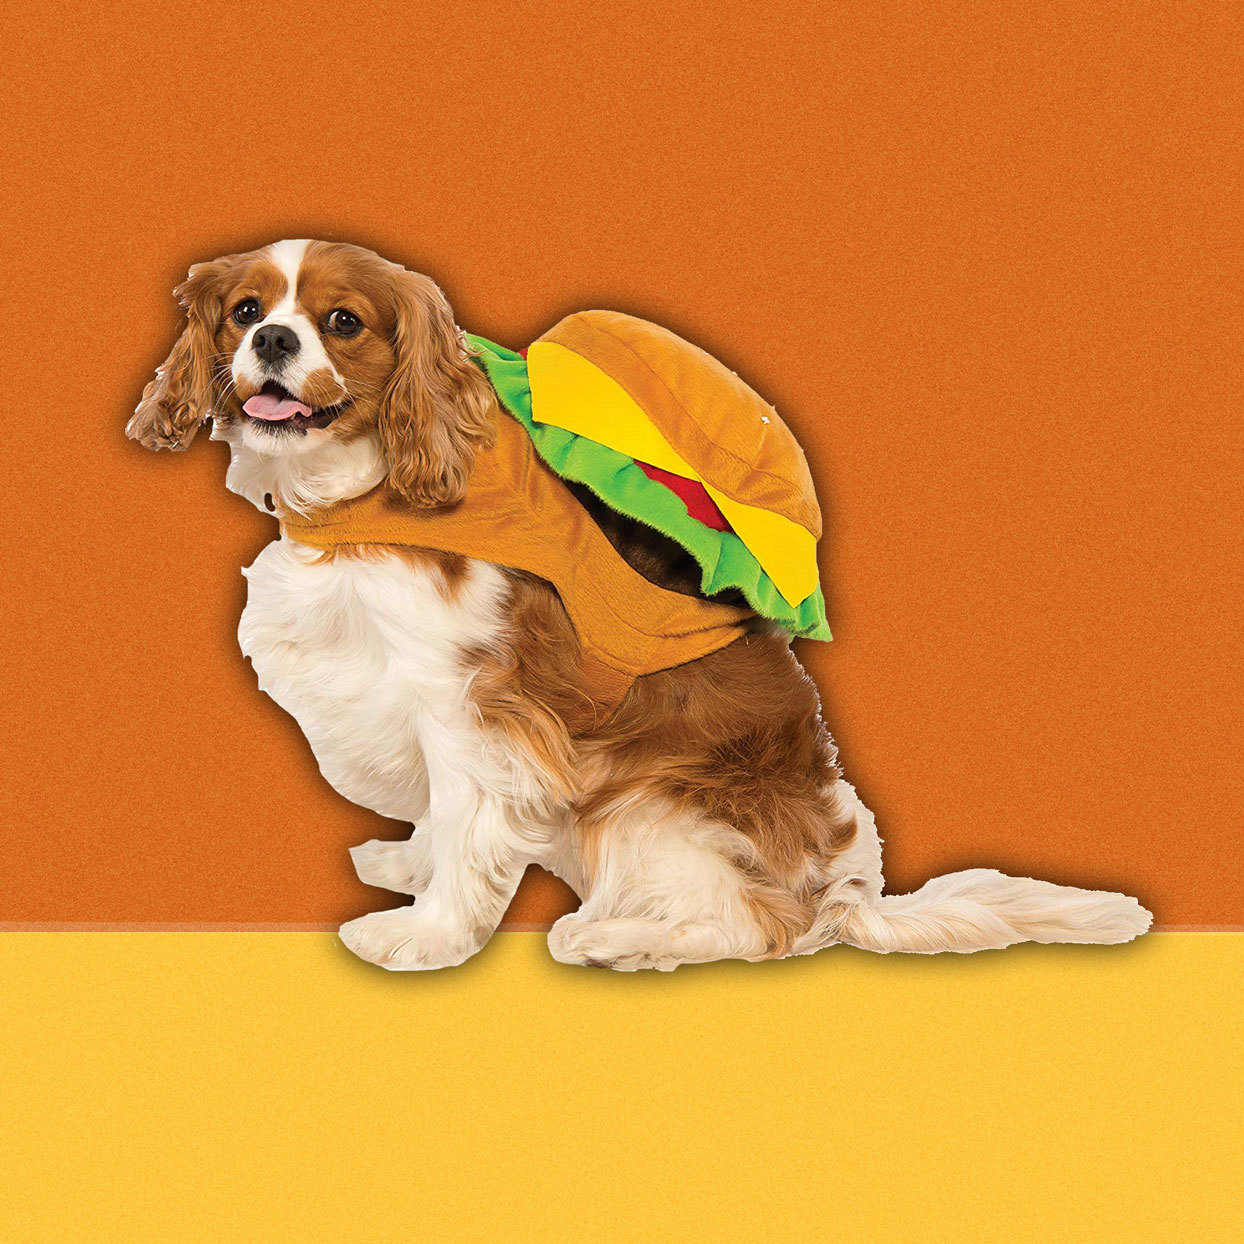 This little hamburger backpack makes a quick and easy Halloween costume for your cat or dog. The costume is easy to attach and you just might be able to get the most skittish of pets dressed up for the holiday.$12.99